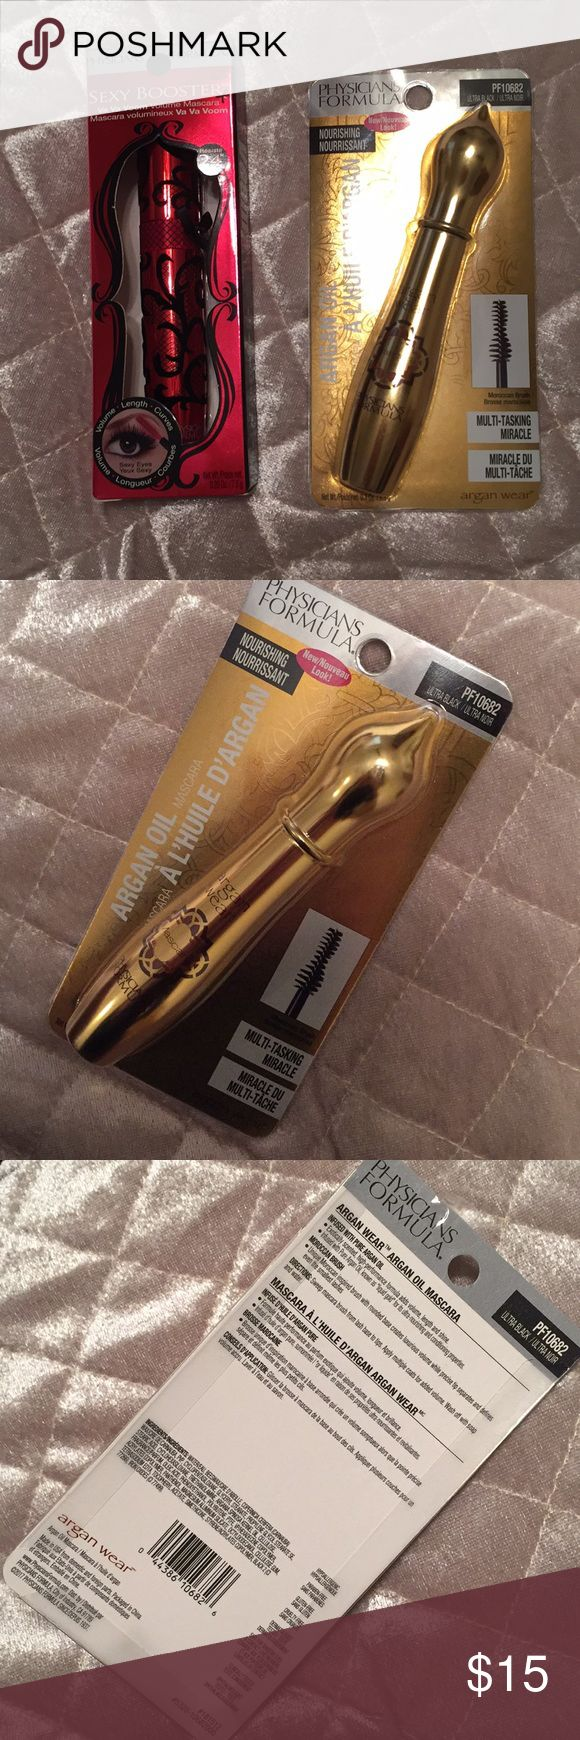 2 New Physicians Formula Mascaras 2 New Physicians Formula Mascaras. Both mascaras included. The gold package is Ultra Black. The red package is Black. Physicians Formula Makeup Mascara